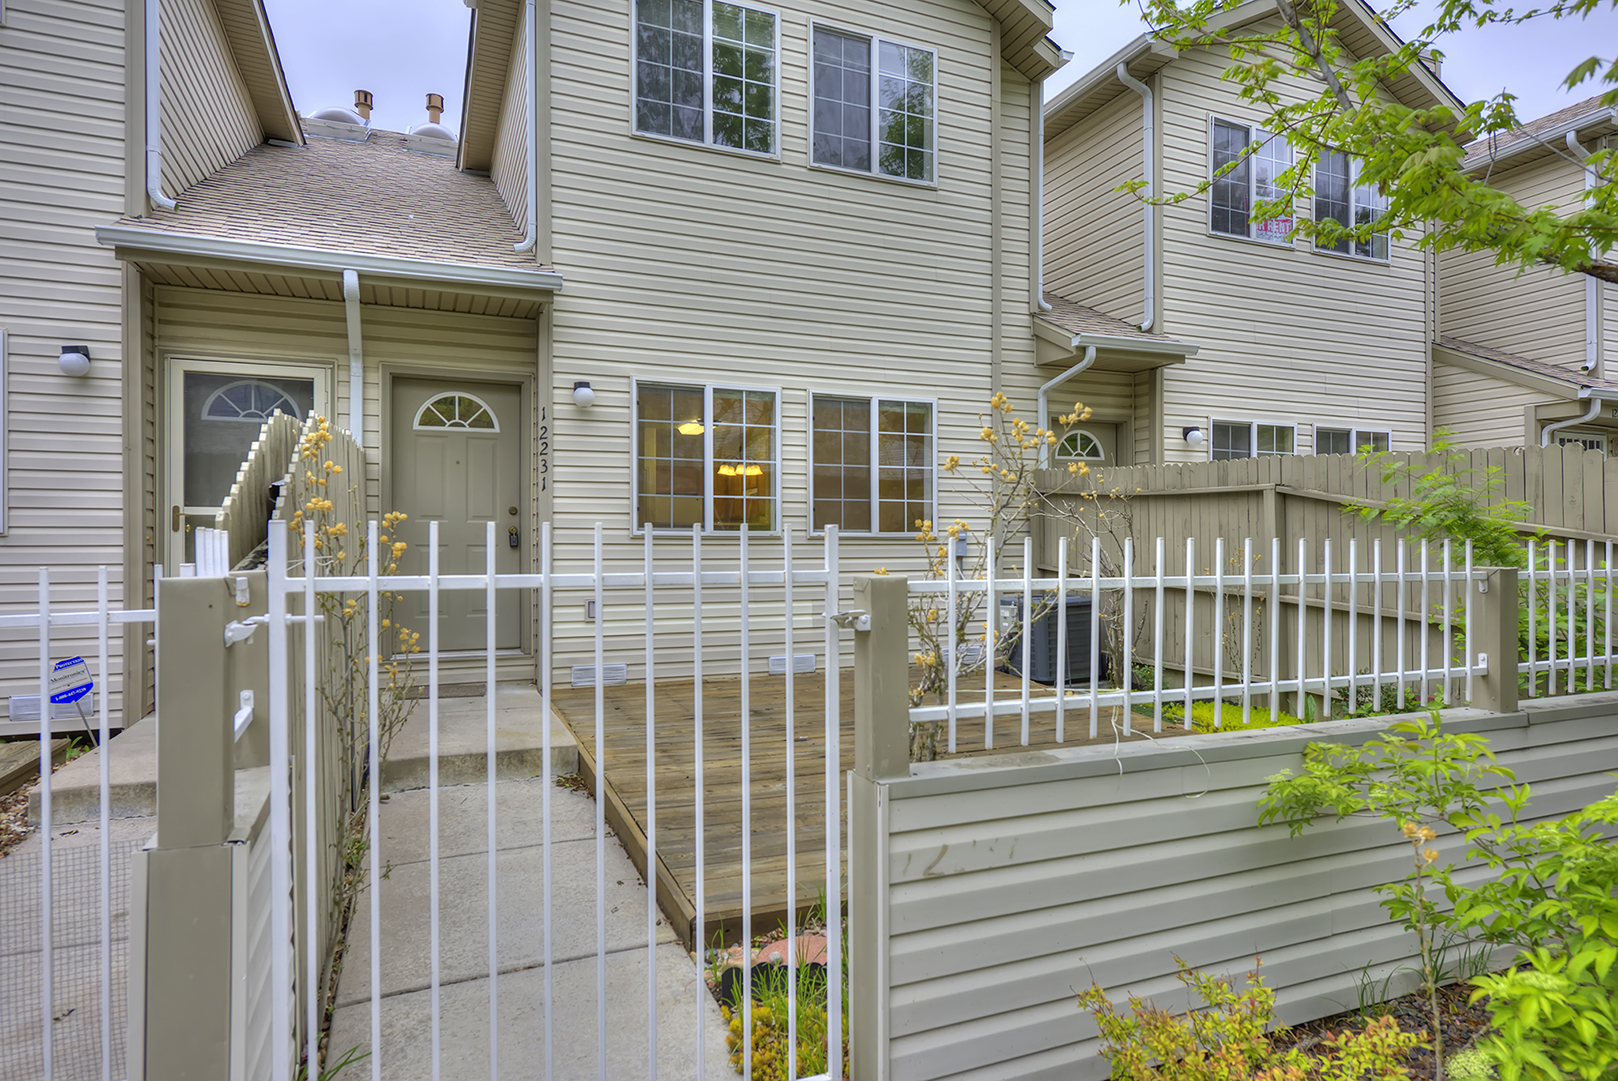 Townhouse for sale in Aurora 3 bed 3 bath with attached 2 car garage